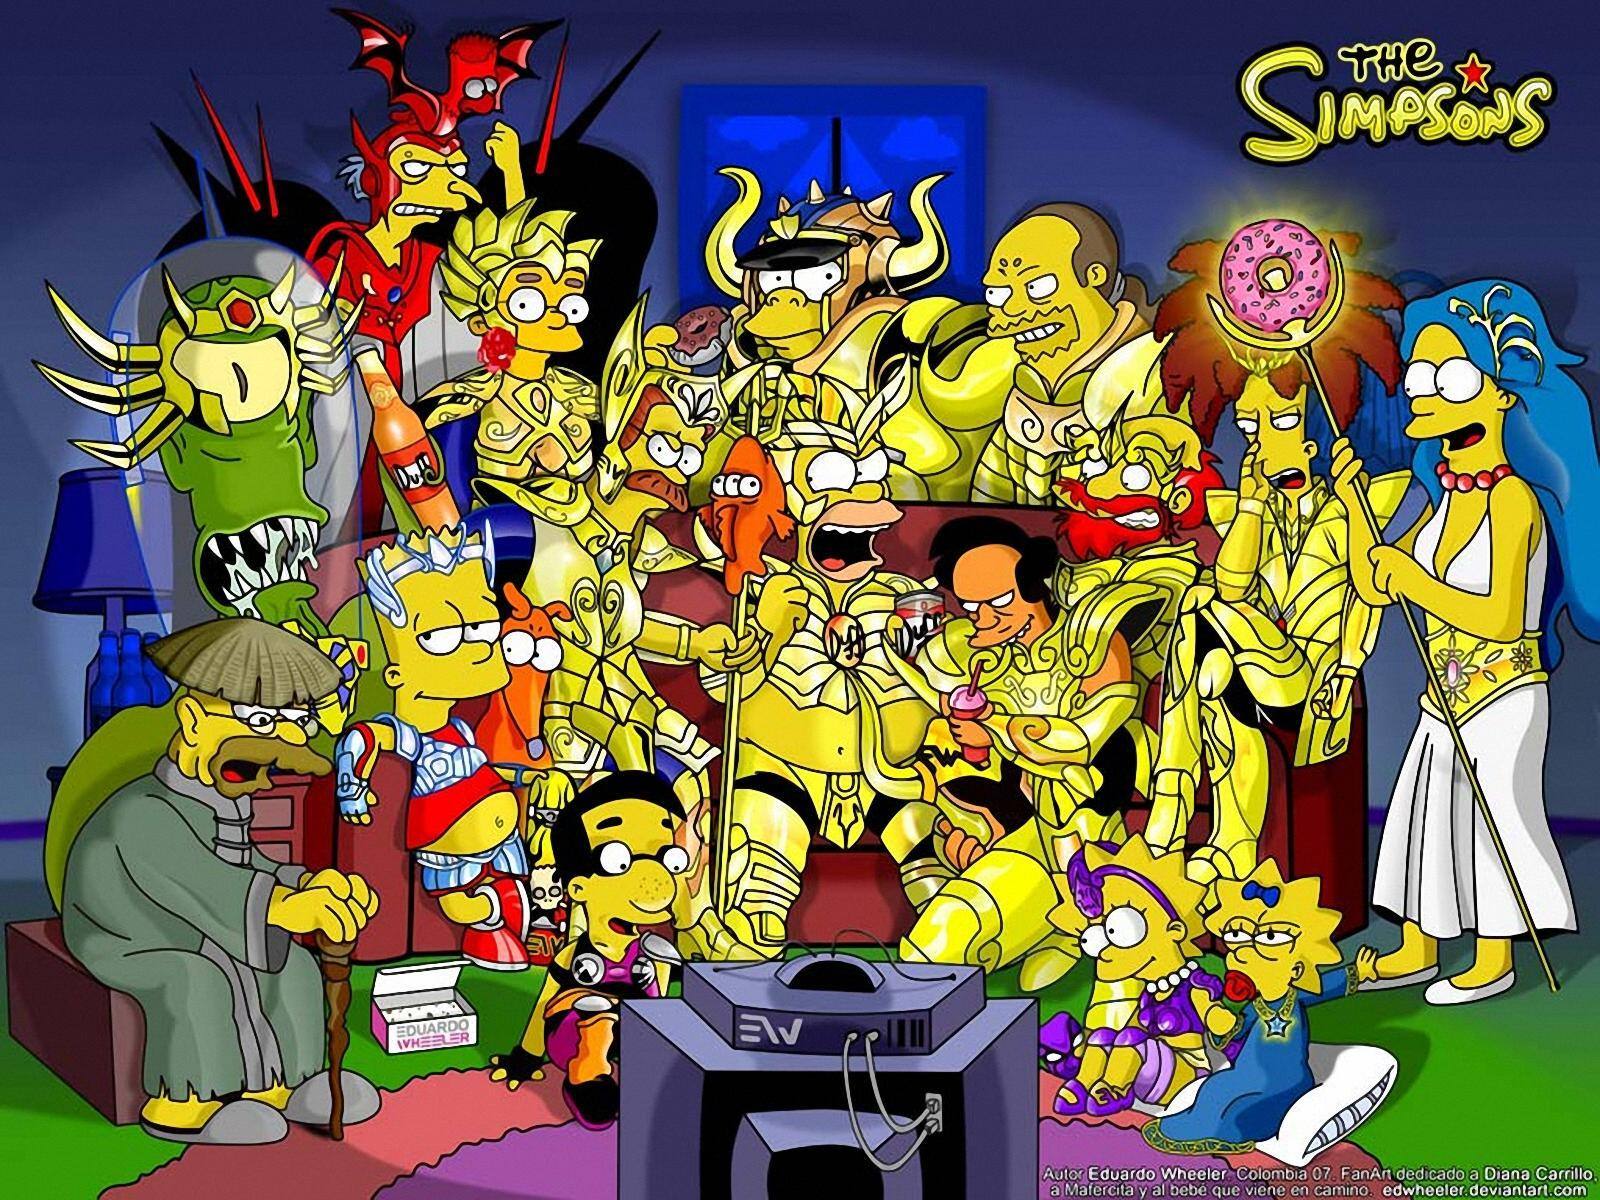 Funny Simpsons Wallpapers |See N Explore World